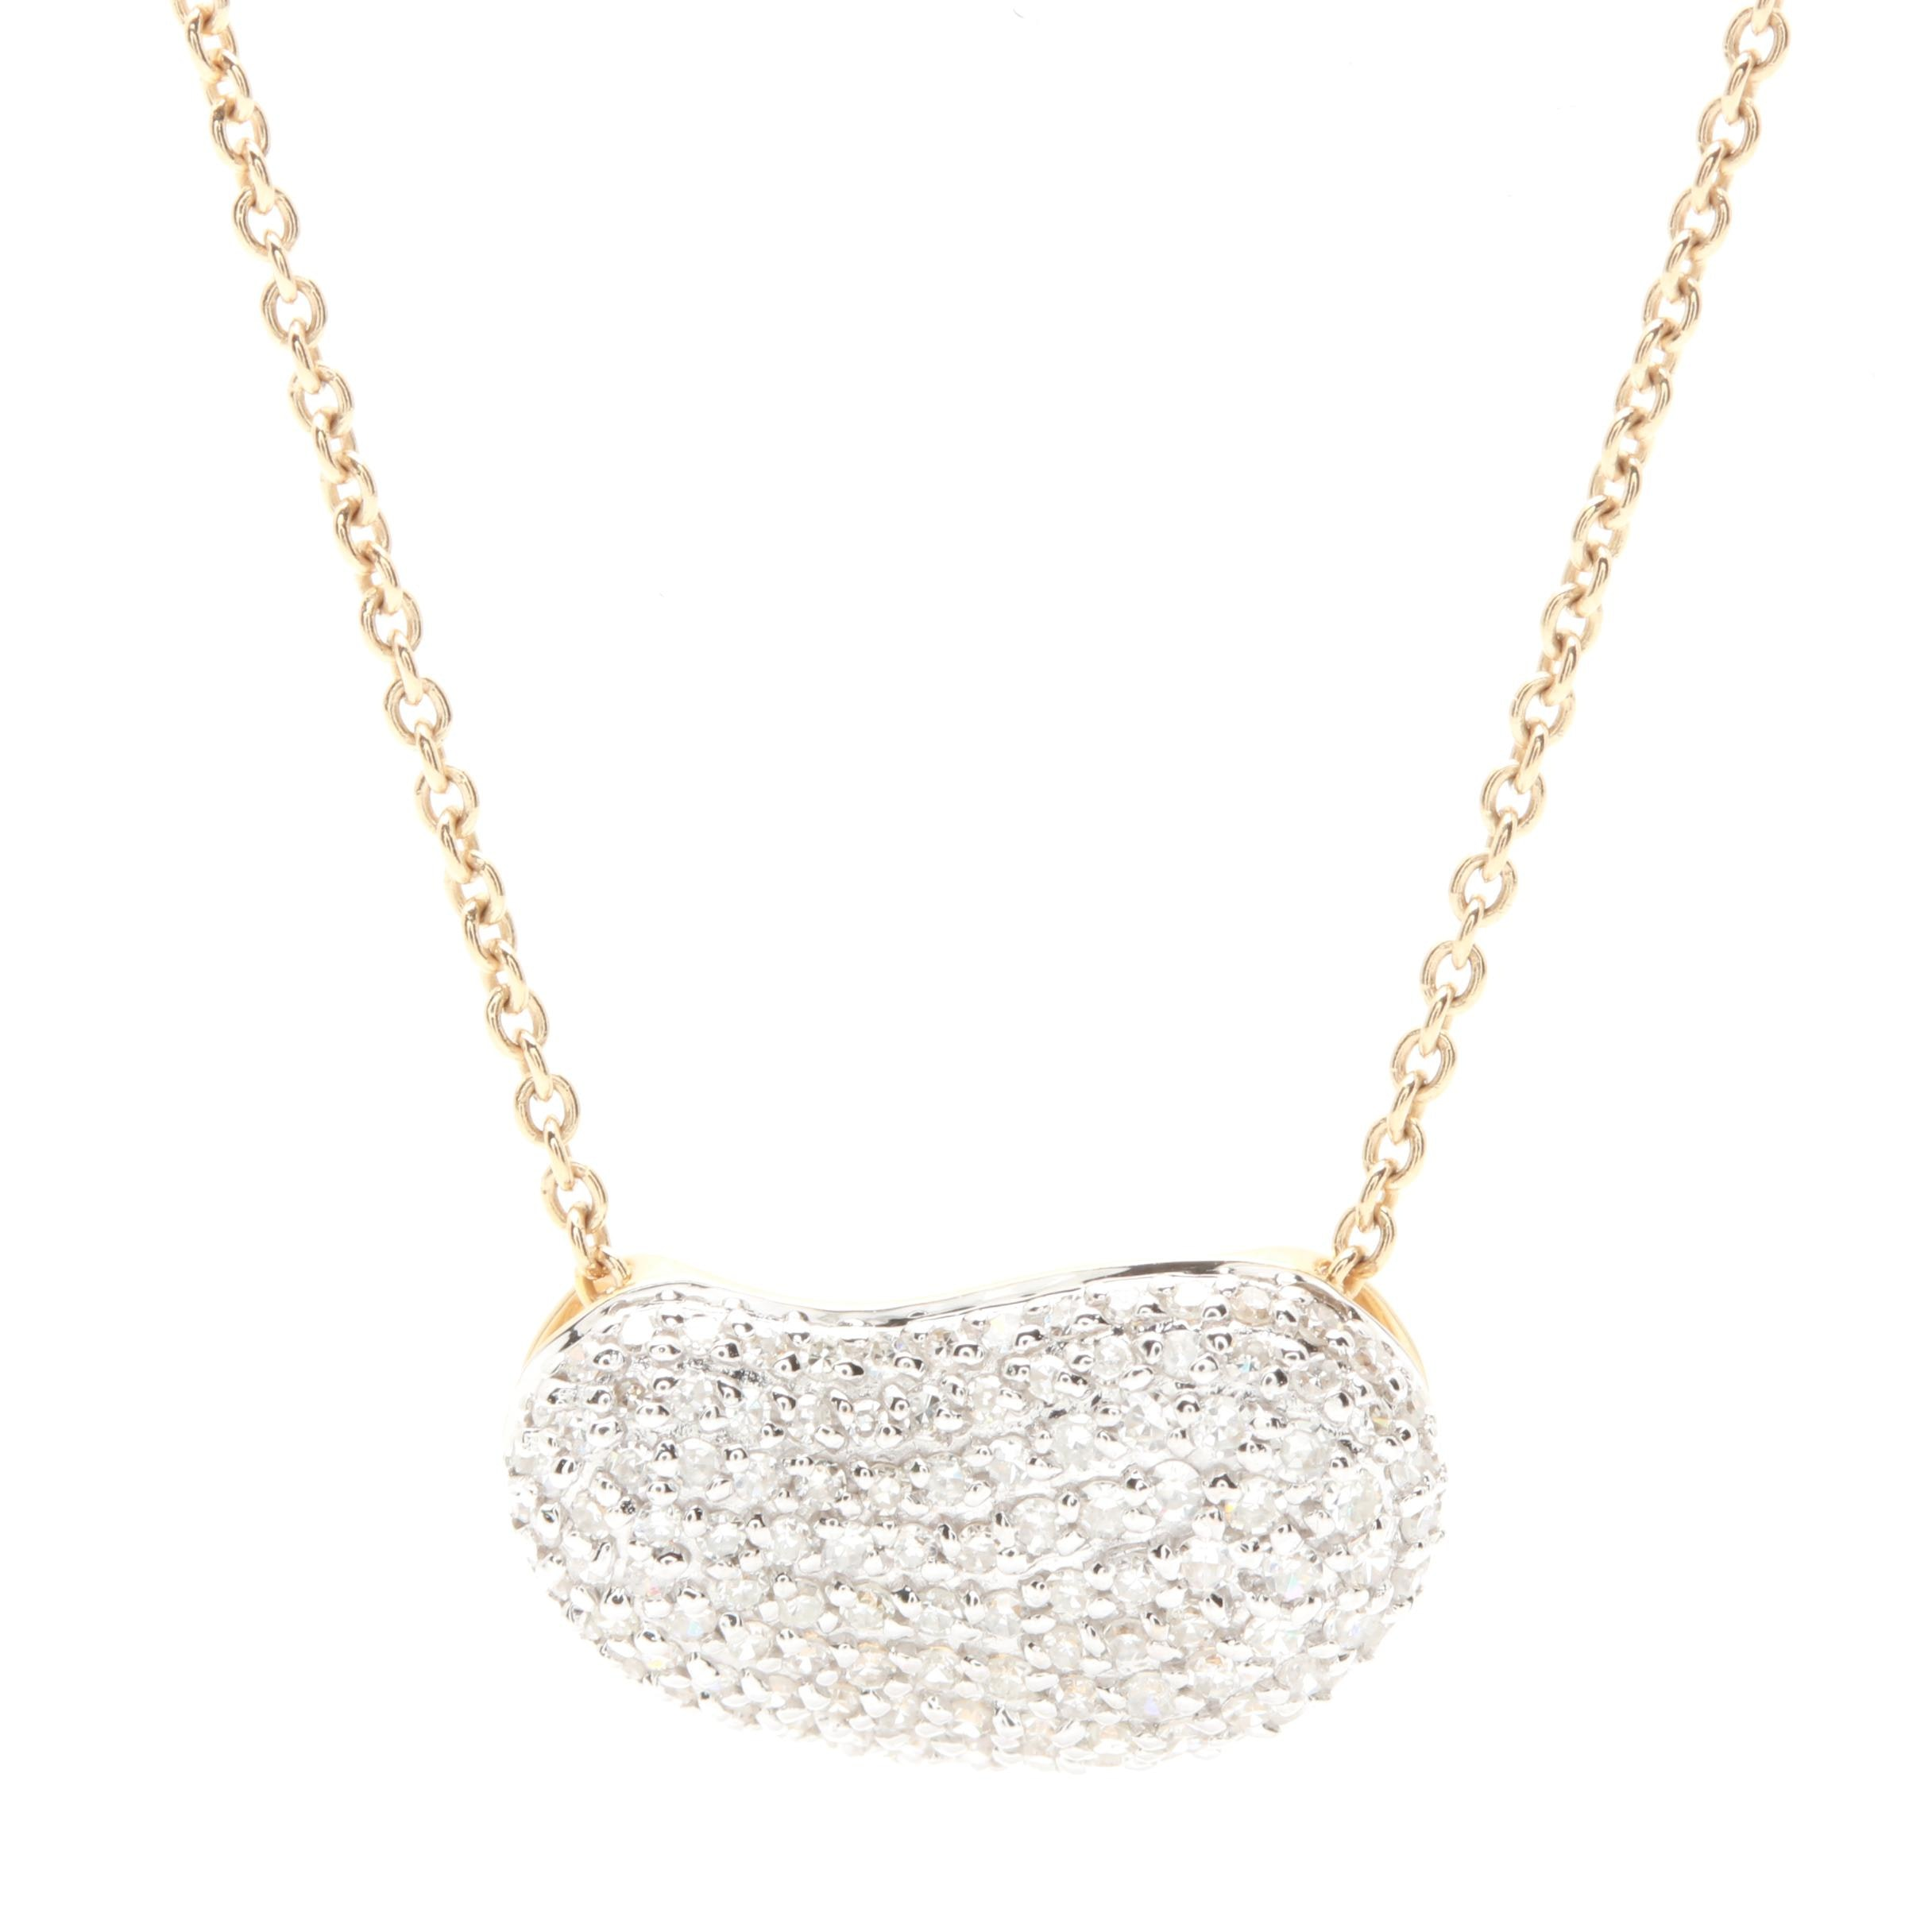 14K Yellow Gold Diamond Pendant Necklace with White Gold Accents